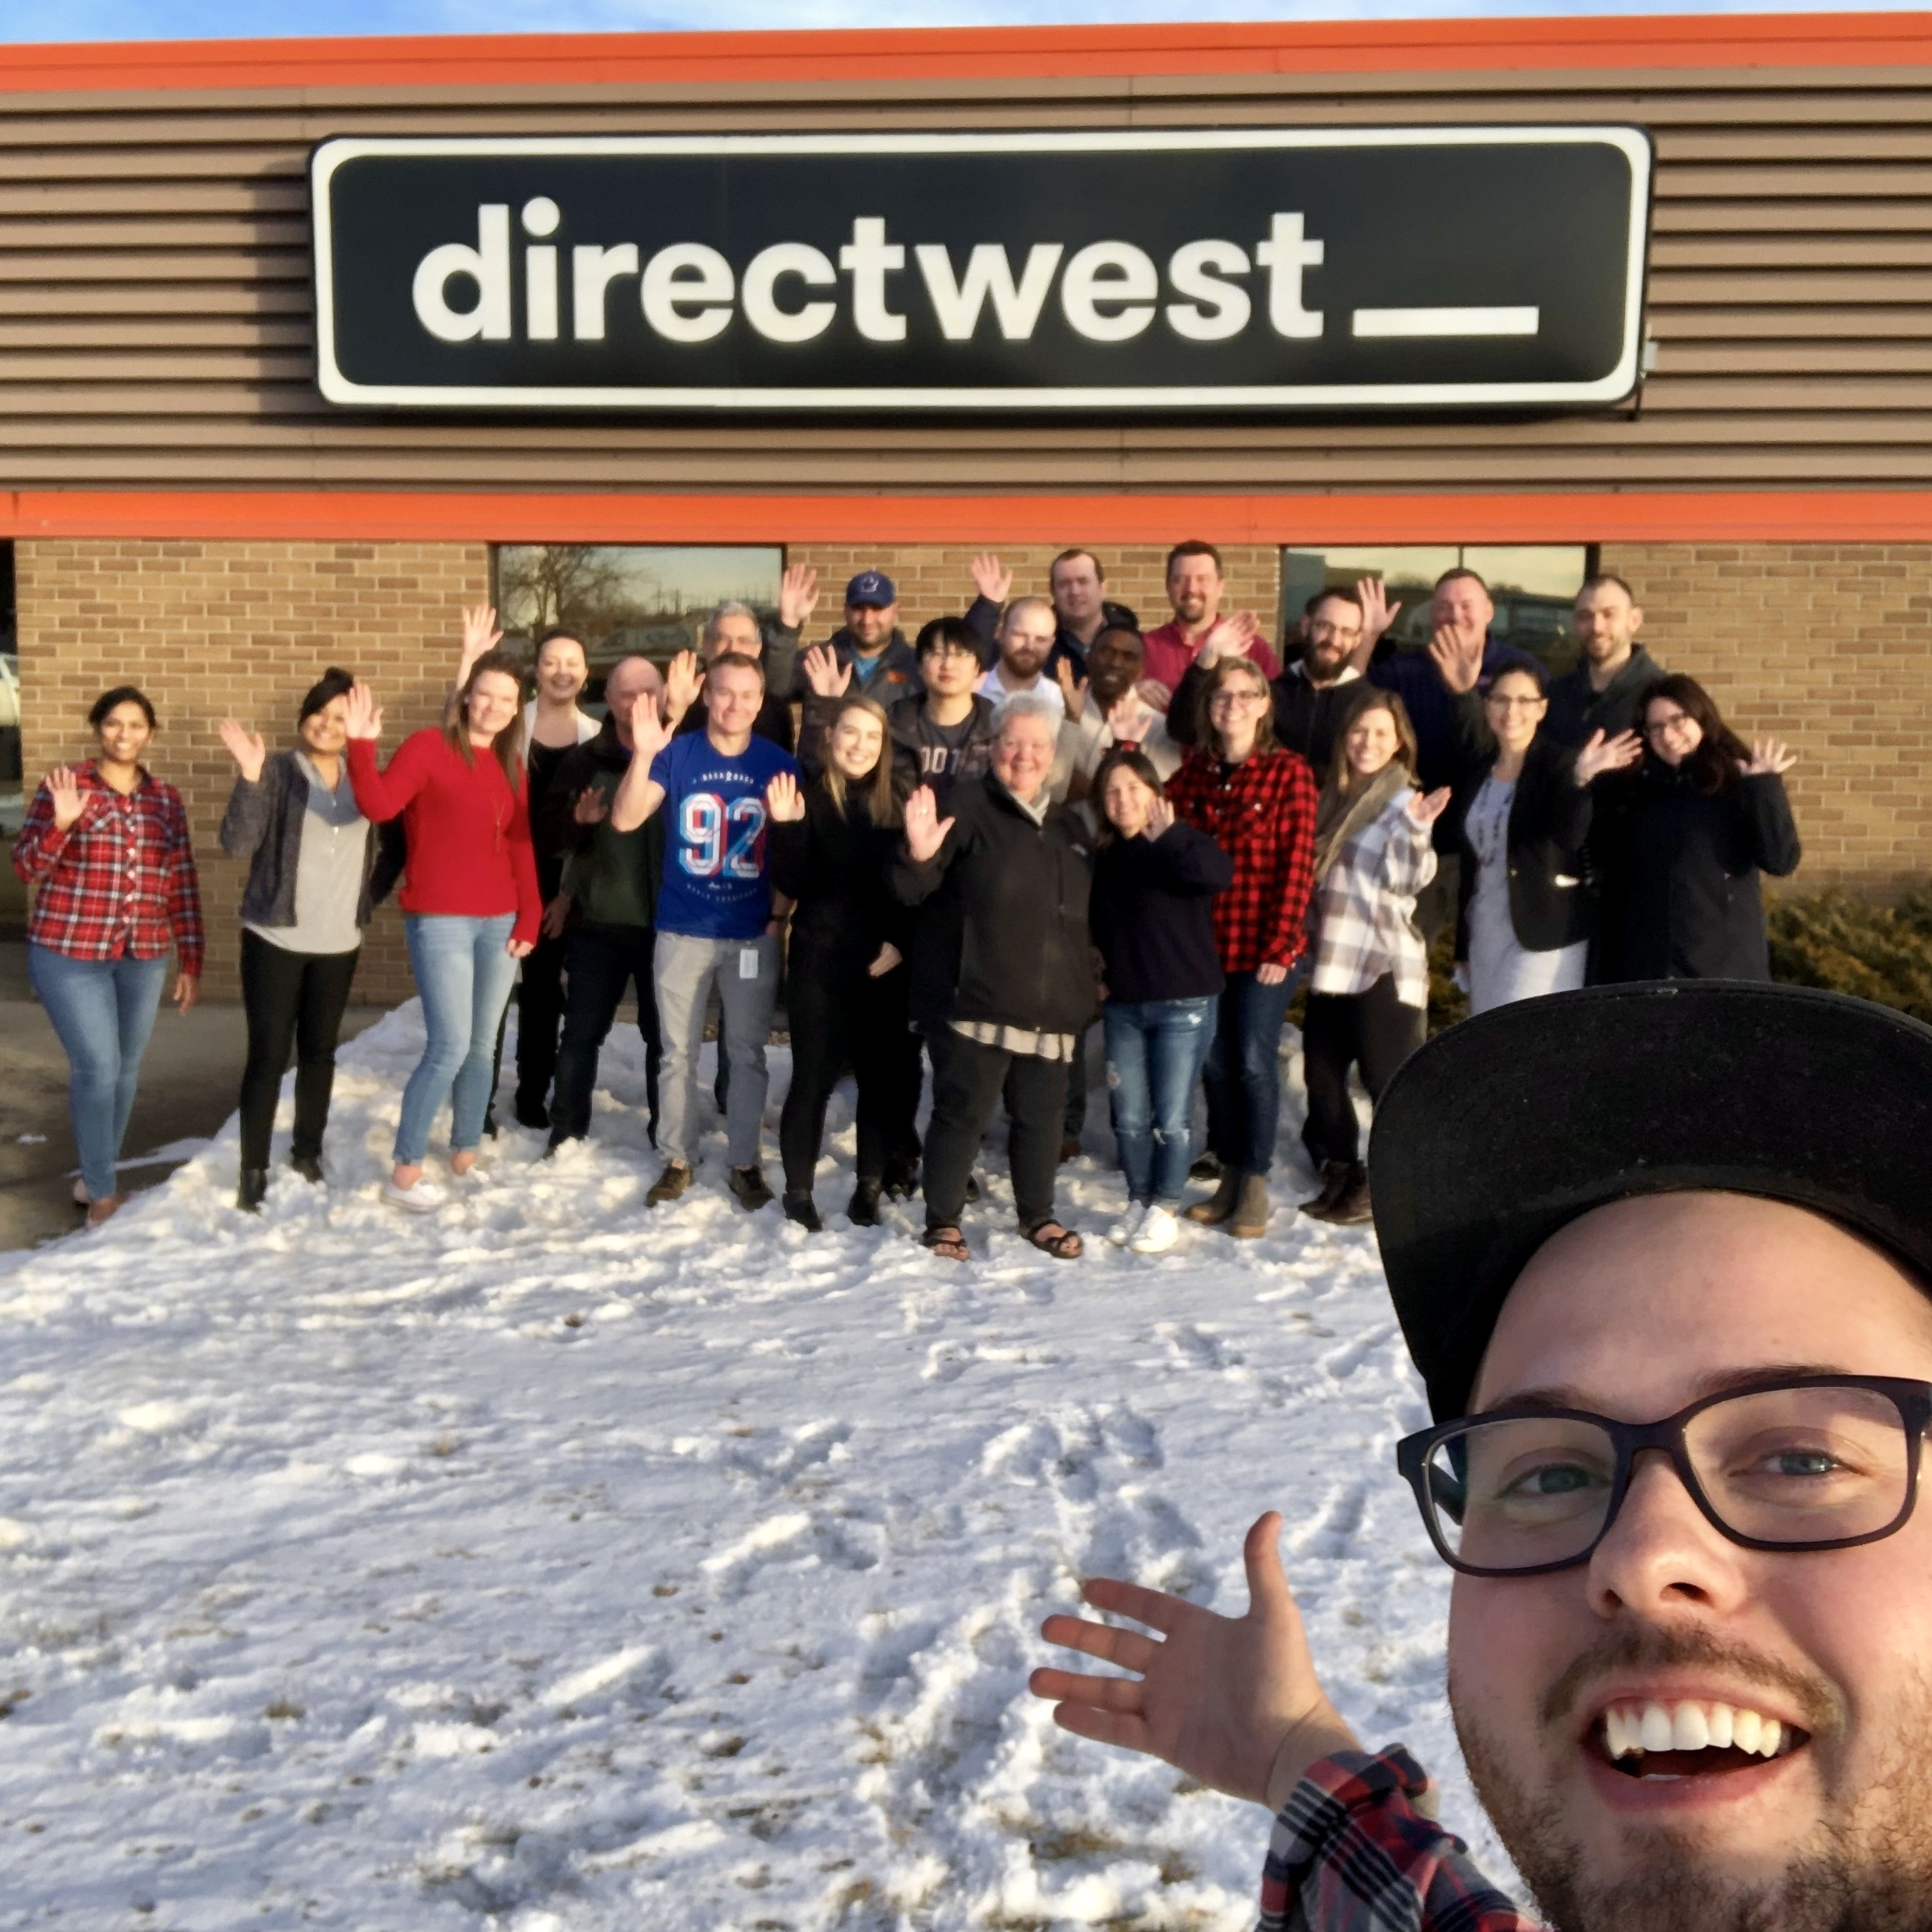 So who is Directwest anyway? Find Out here